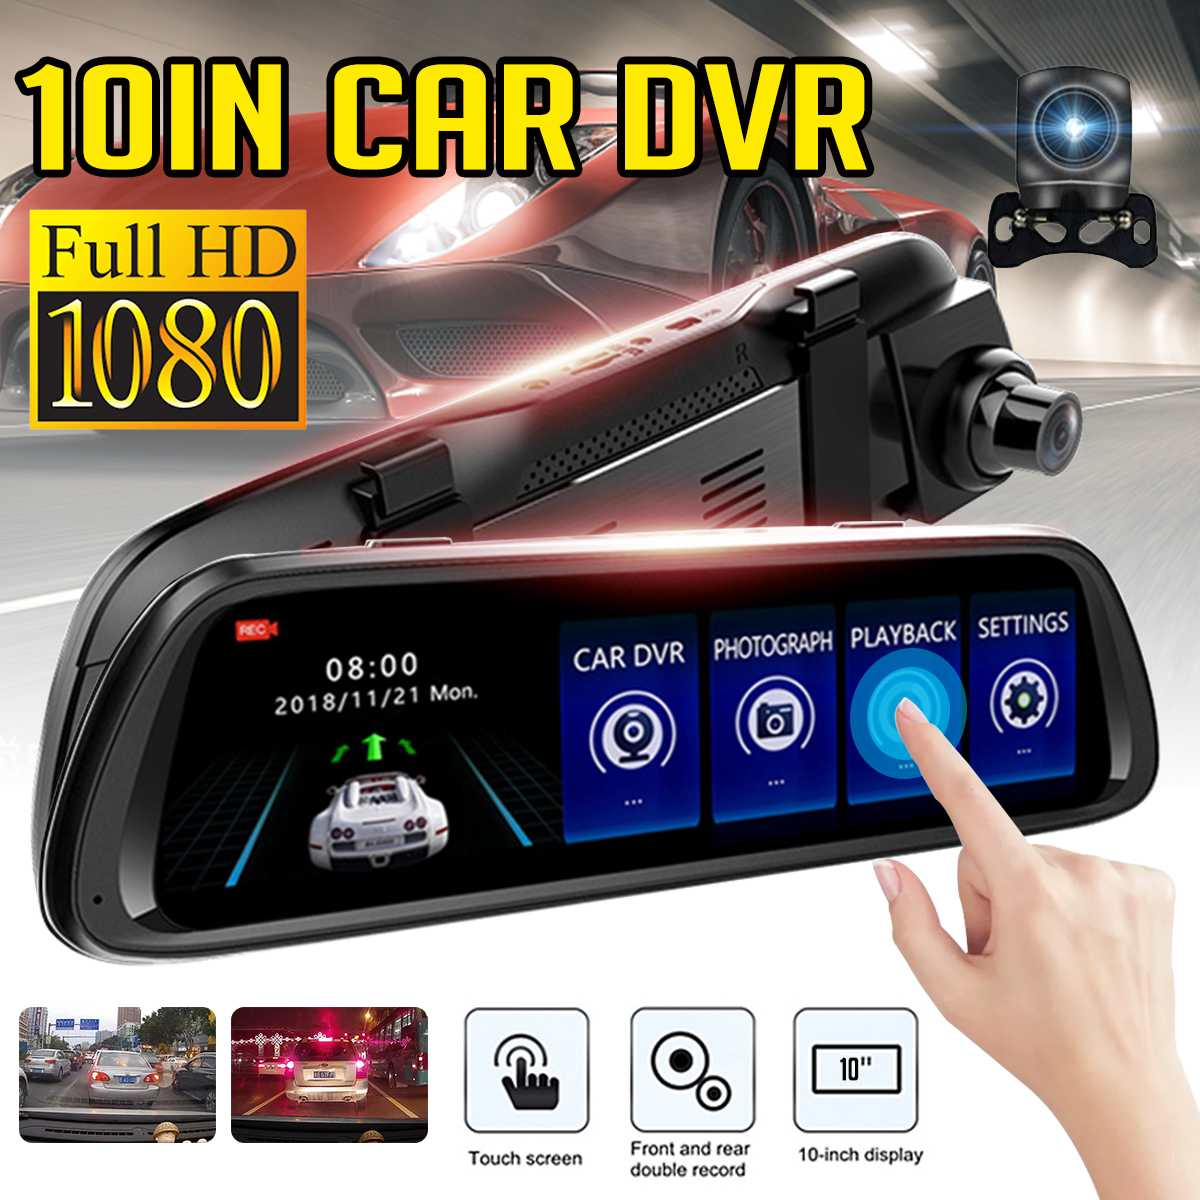 Car-Dvr-Camera Android-Stream Media Video-Recorder Dash-Cam Rear-View-Mirror Wifi Registrar